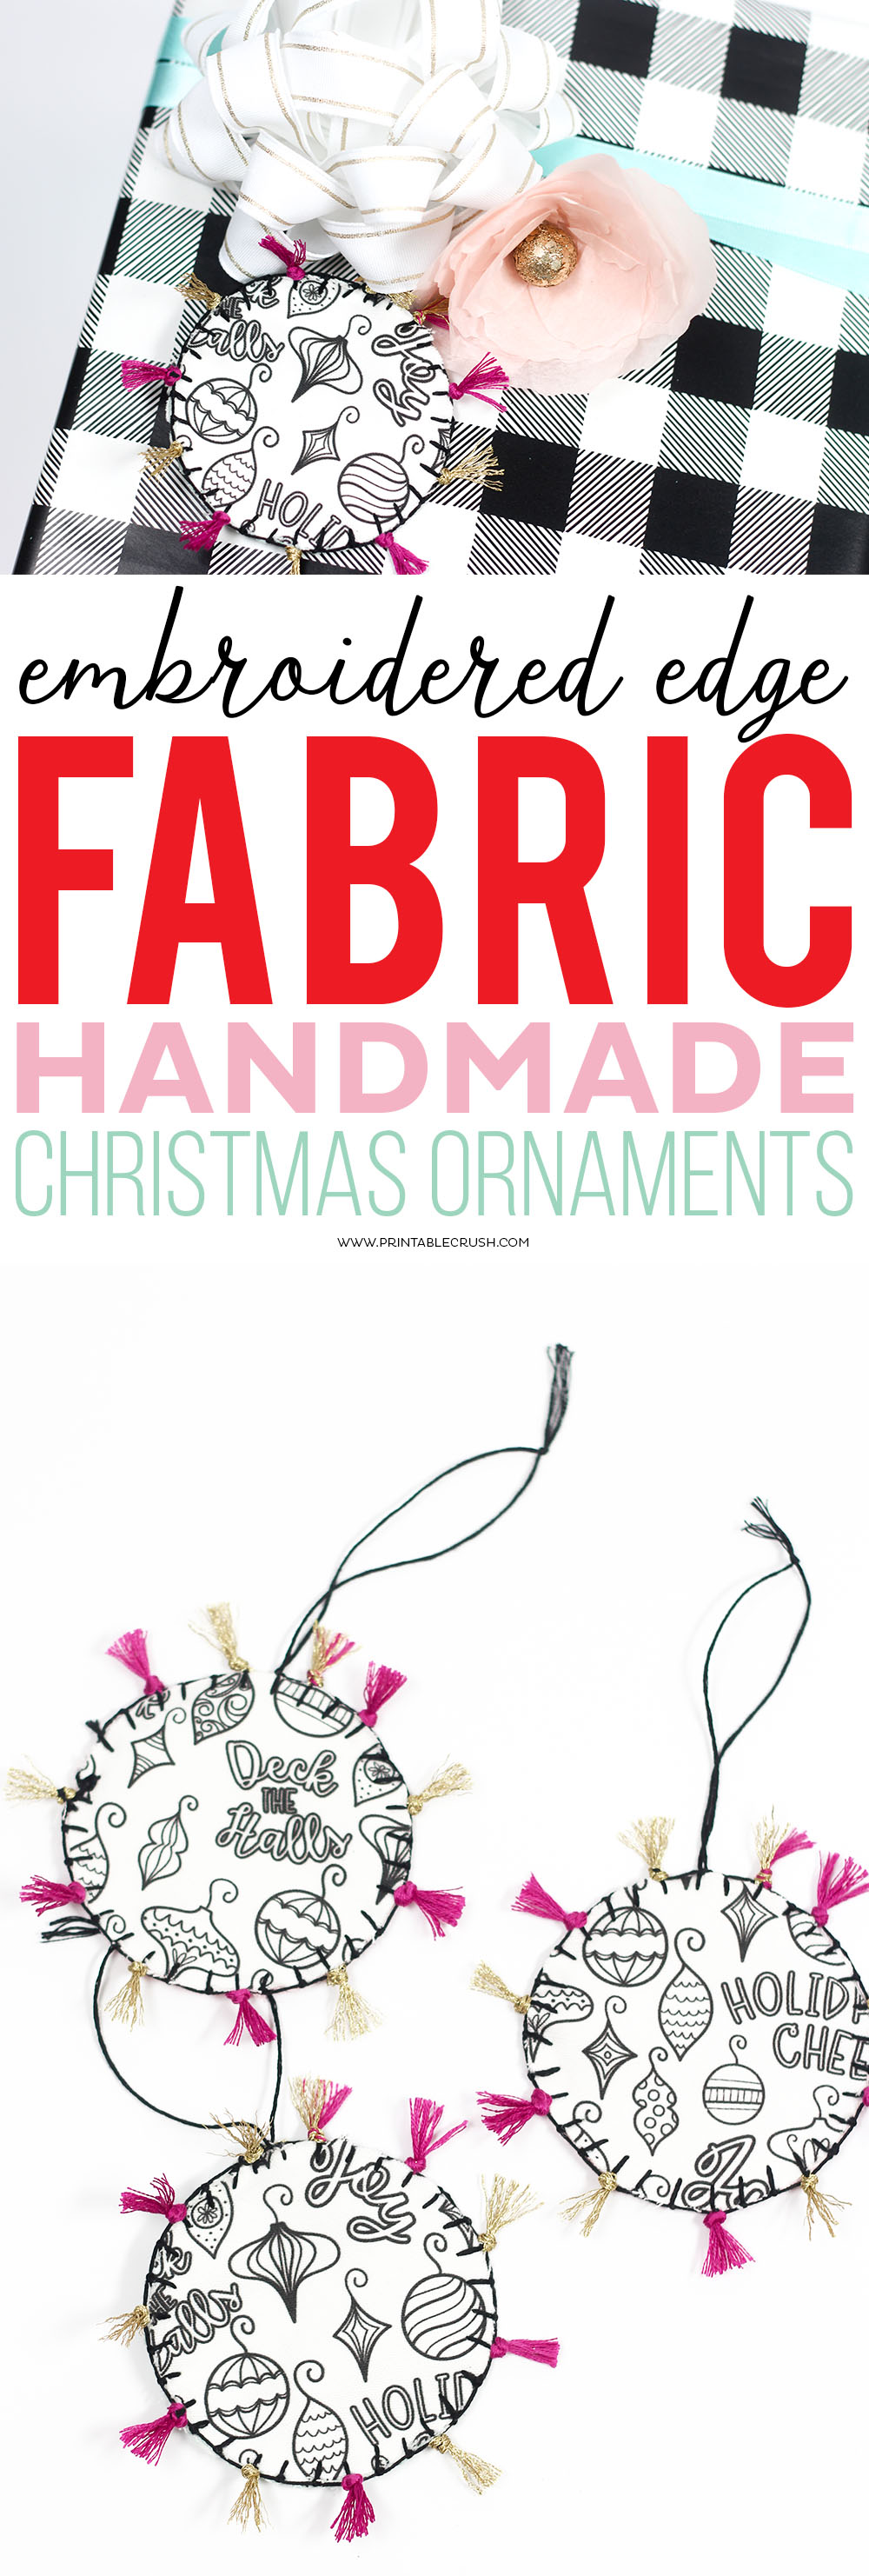 These FabricHandmade Christmas Ornaments and gift tags areadorable! Learn how to give them an embroidered edge. They're easy to make for any embroidery skill level! via @printablecrush